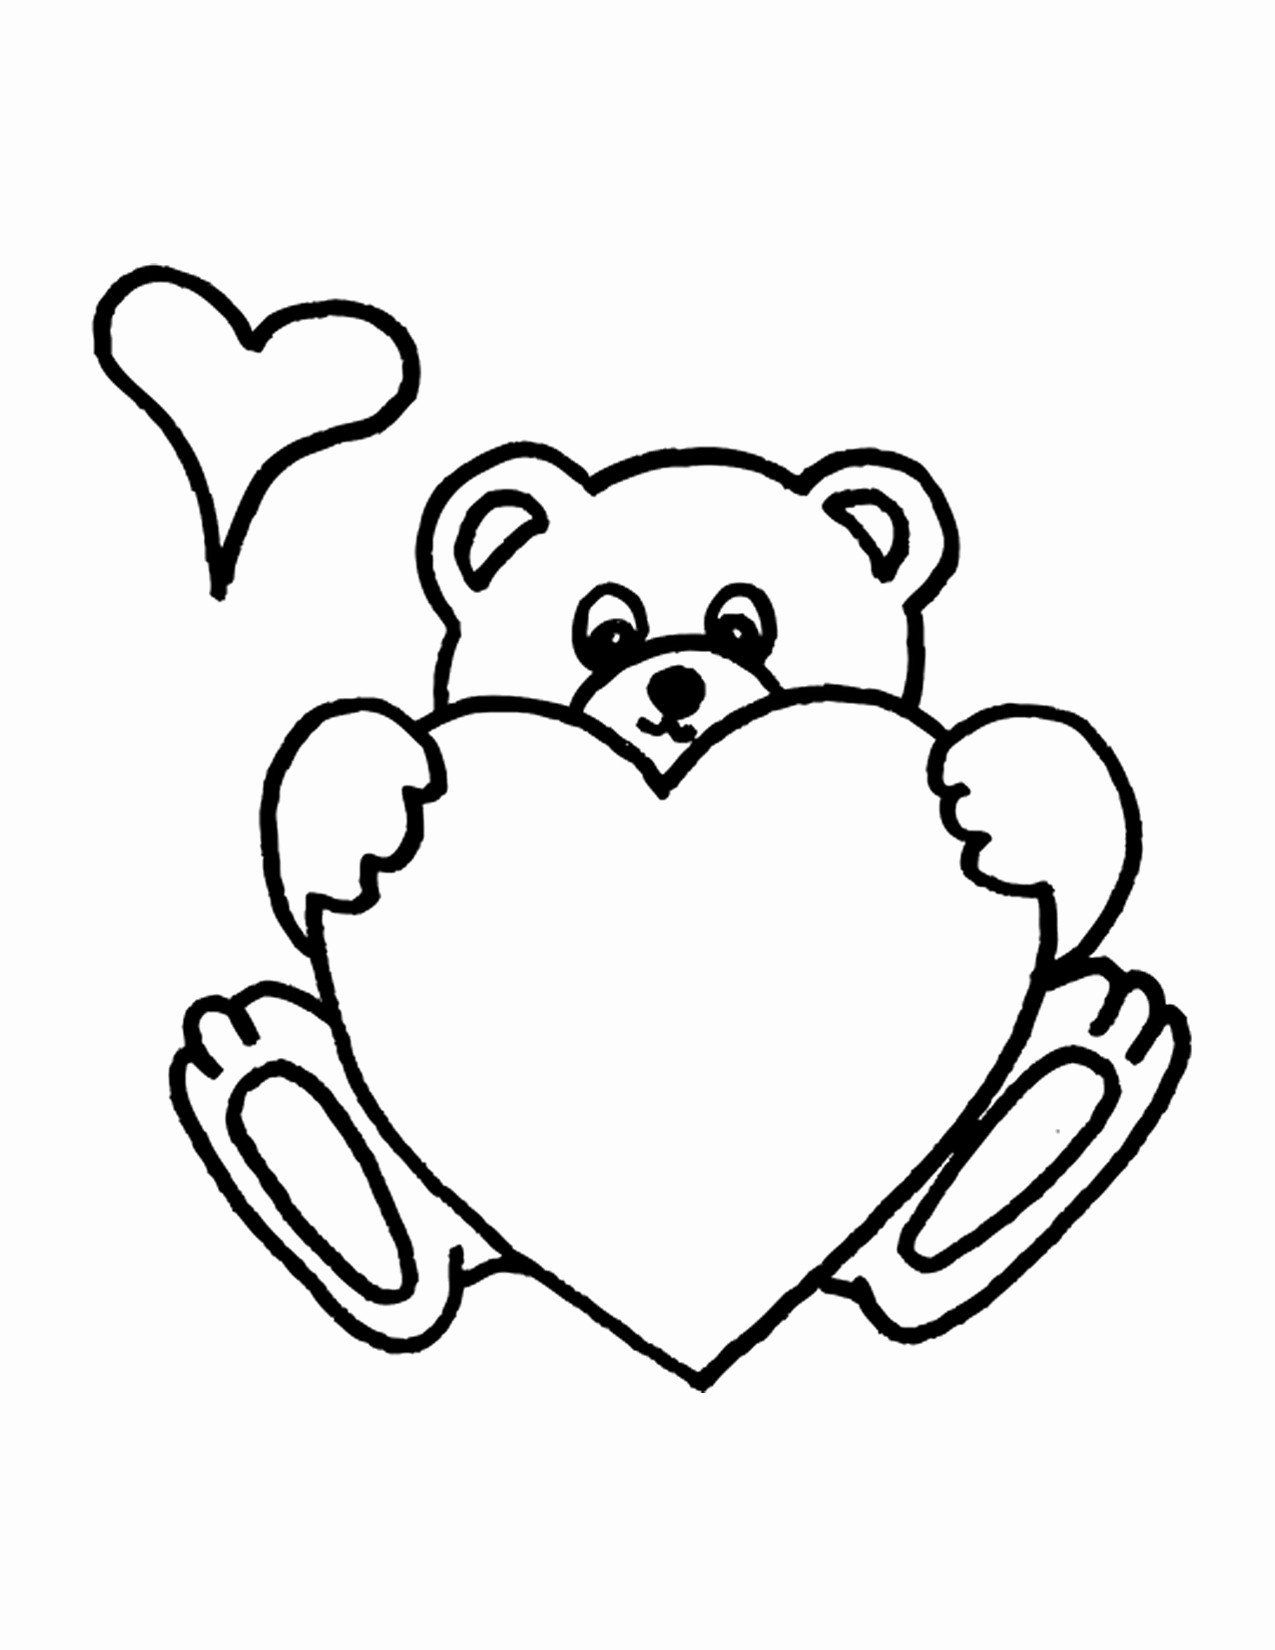 Teddy Bears Coloring Page Teddy Bears Coloring Page Awesome Cute Teddy Bear Coloring In 2020 Heart Coloring Pages Teddy Bear Coloring Pages Love Coloring Pages